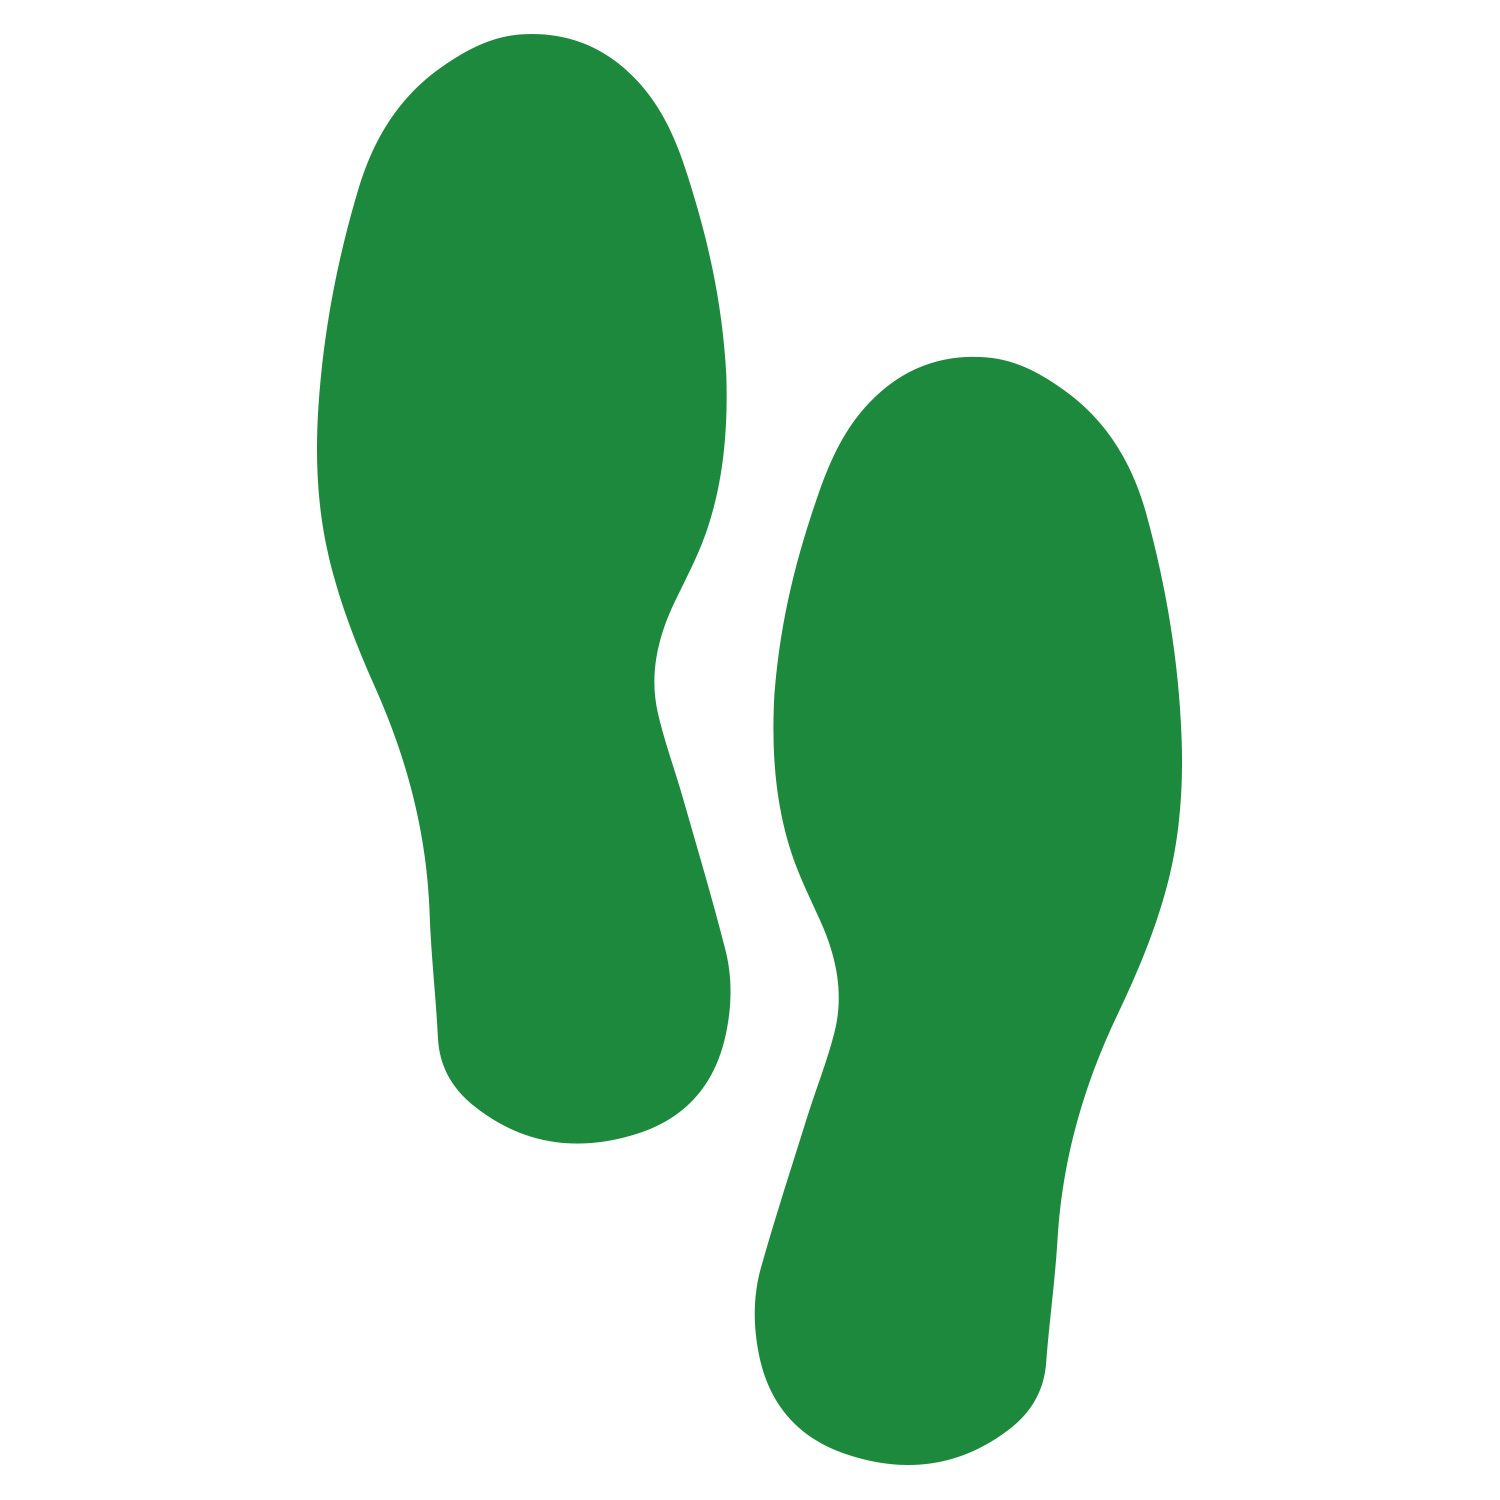 Primary image for LiteMark Mini Size Green Durable Footprint Decals  - Pack of 20 (10 Pairs)